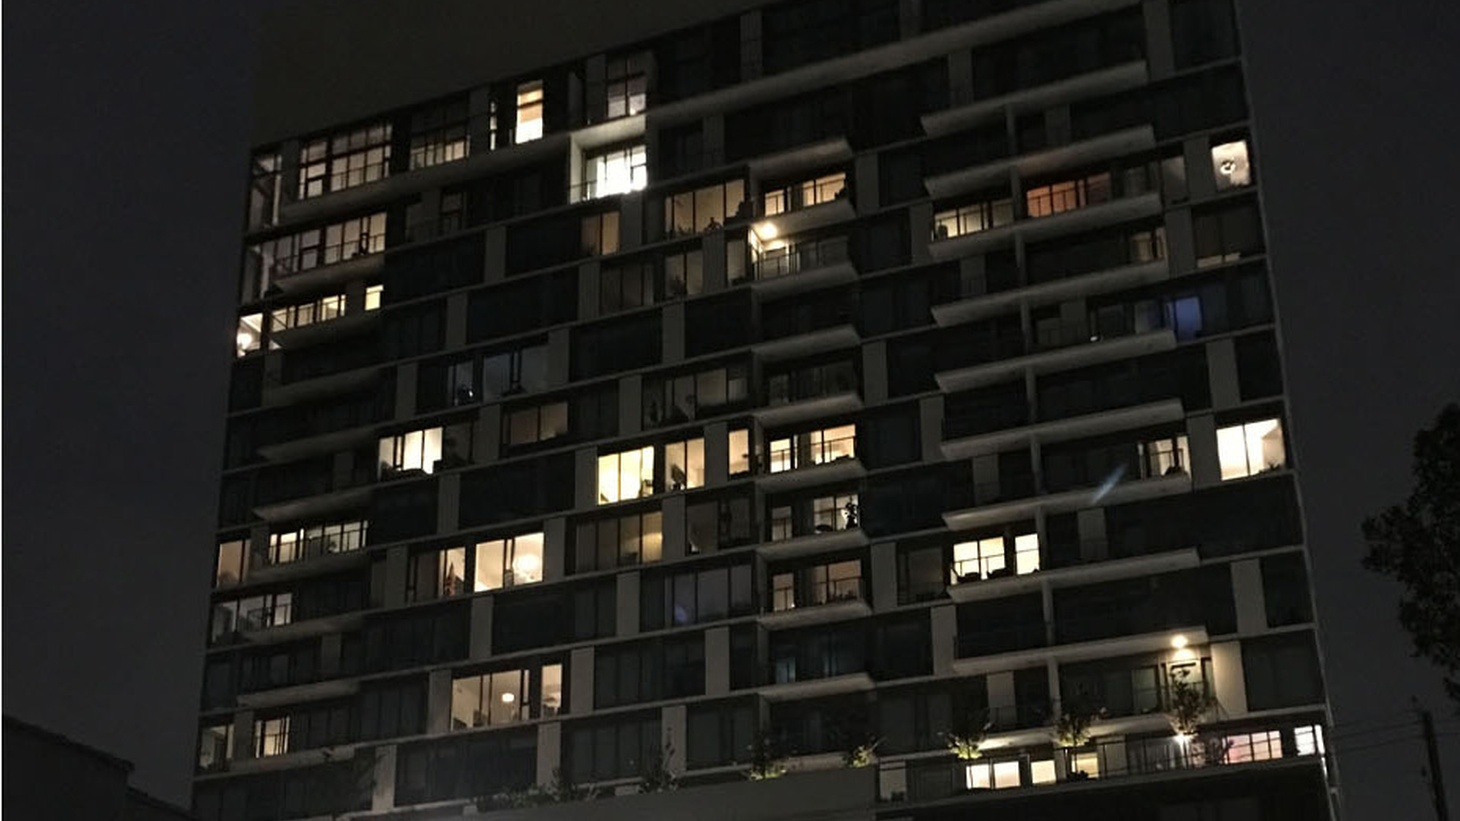 Few lights are on at the Vision, an 18-story high-rise in West LA, suggesting to some that it may have a number of vacant units.